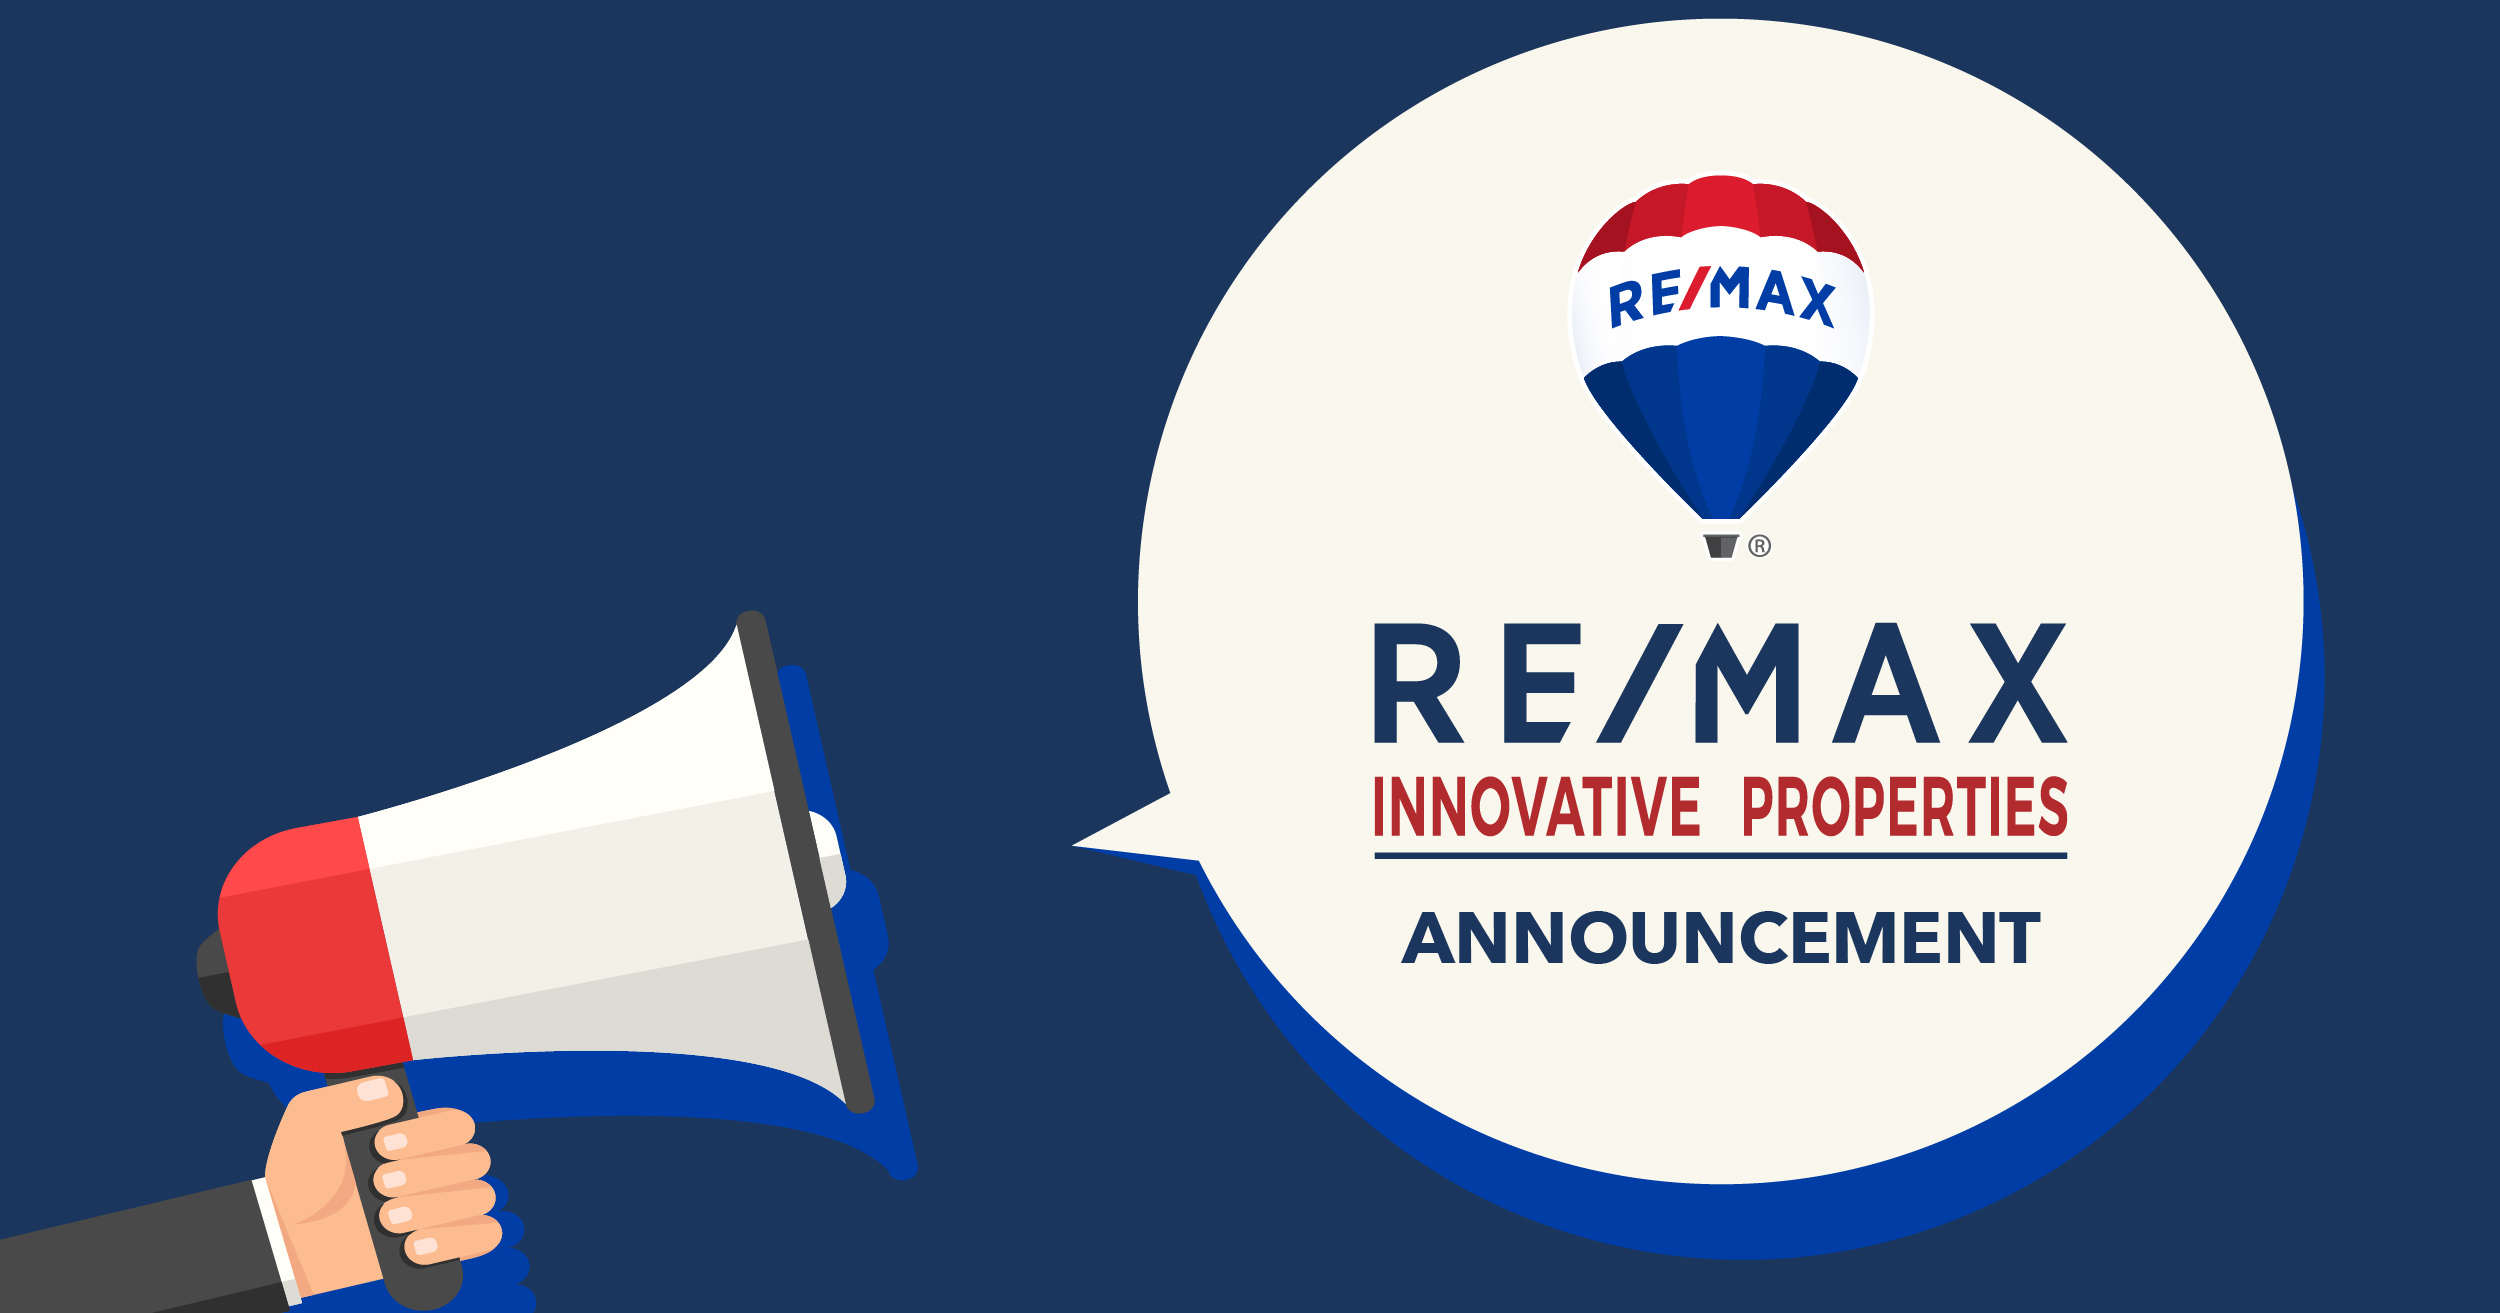 RE/MAX Innovative Properties Announcement